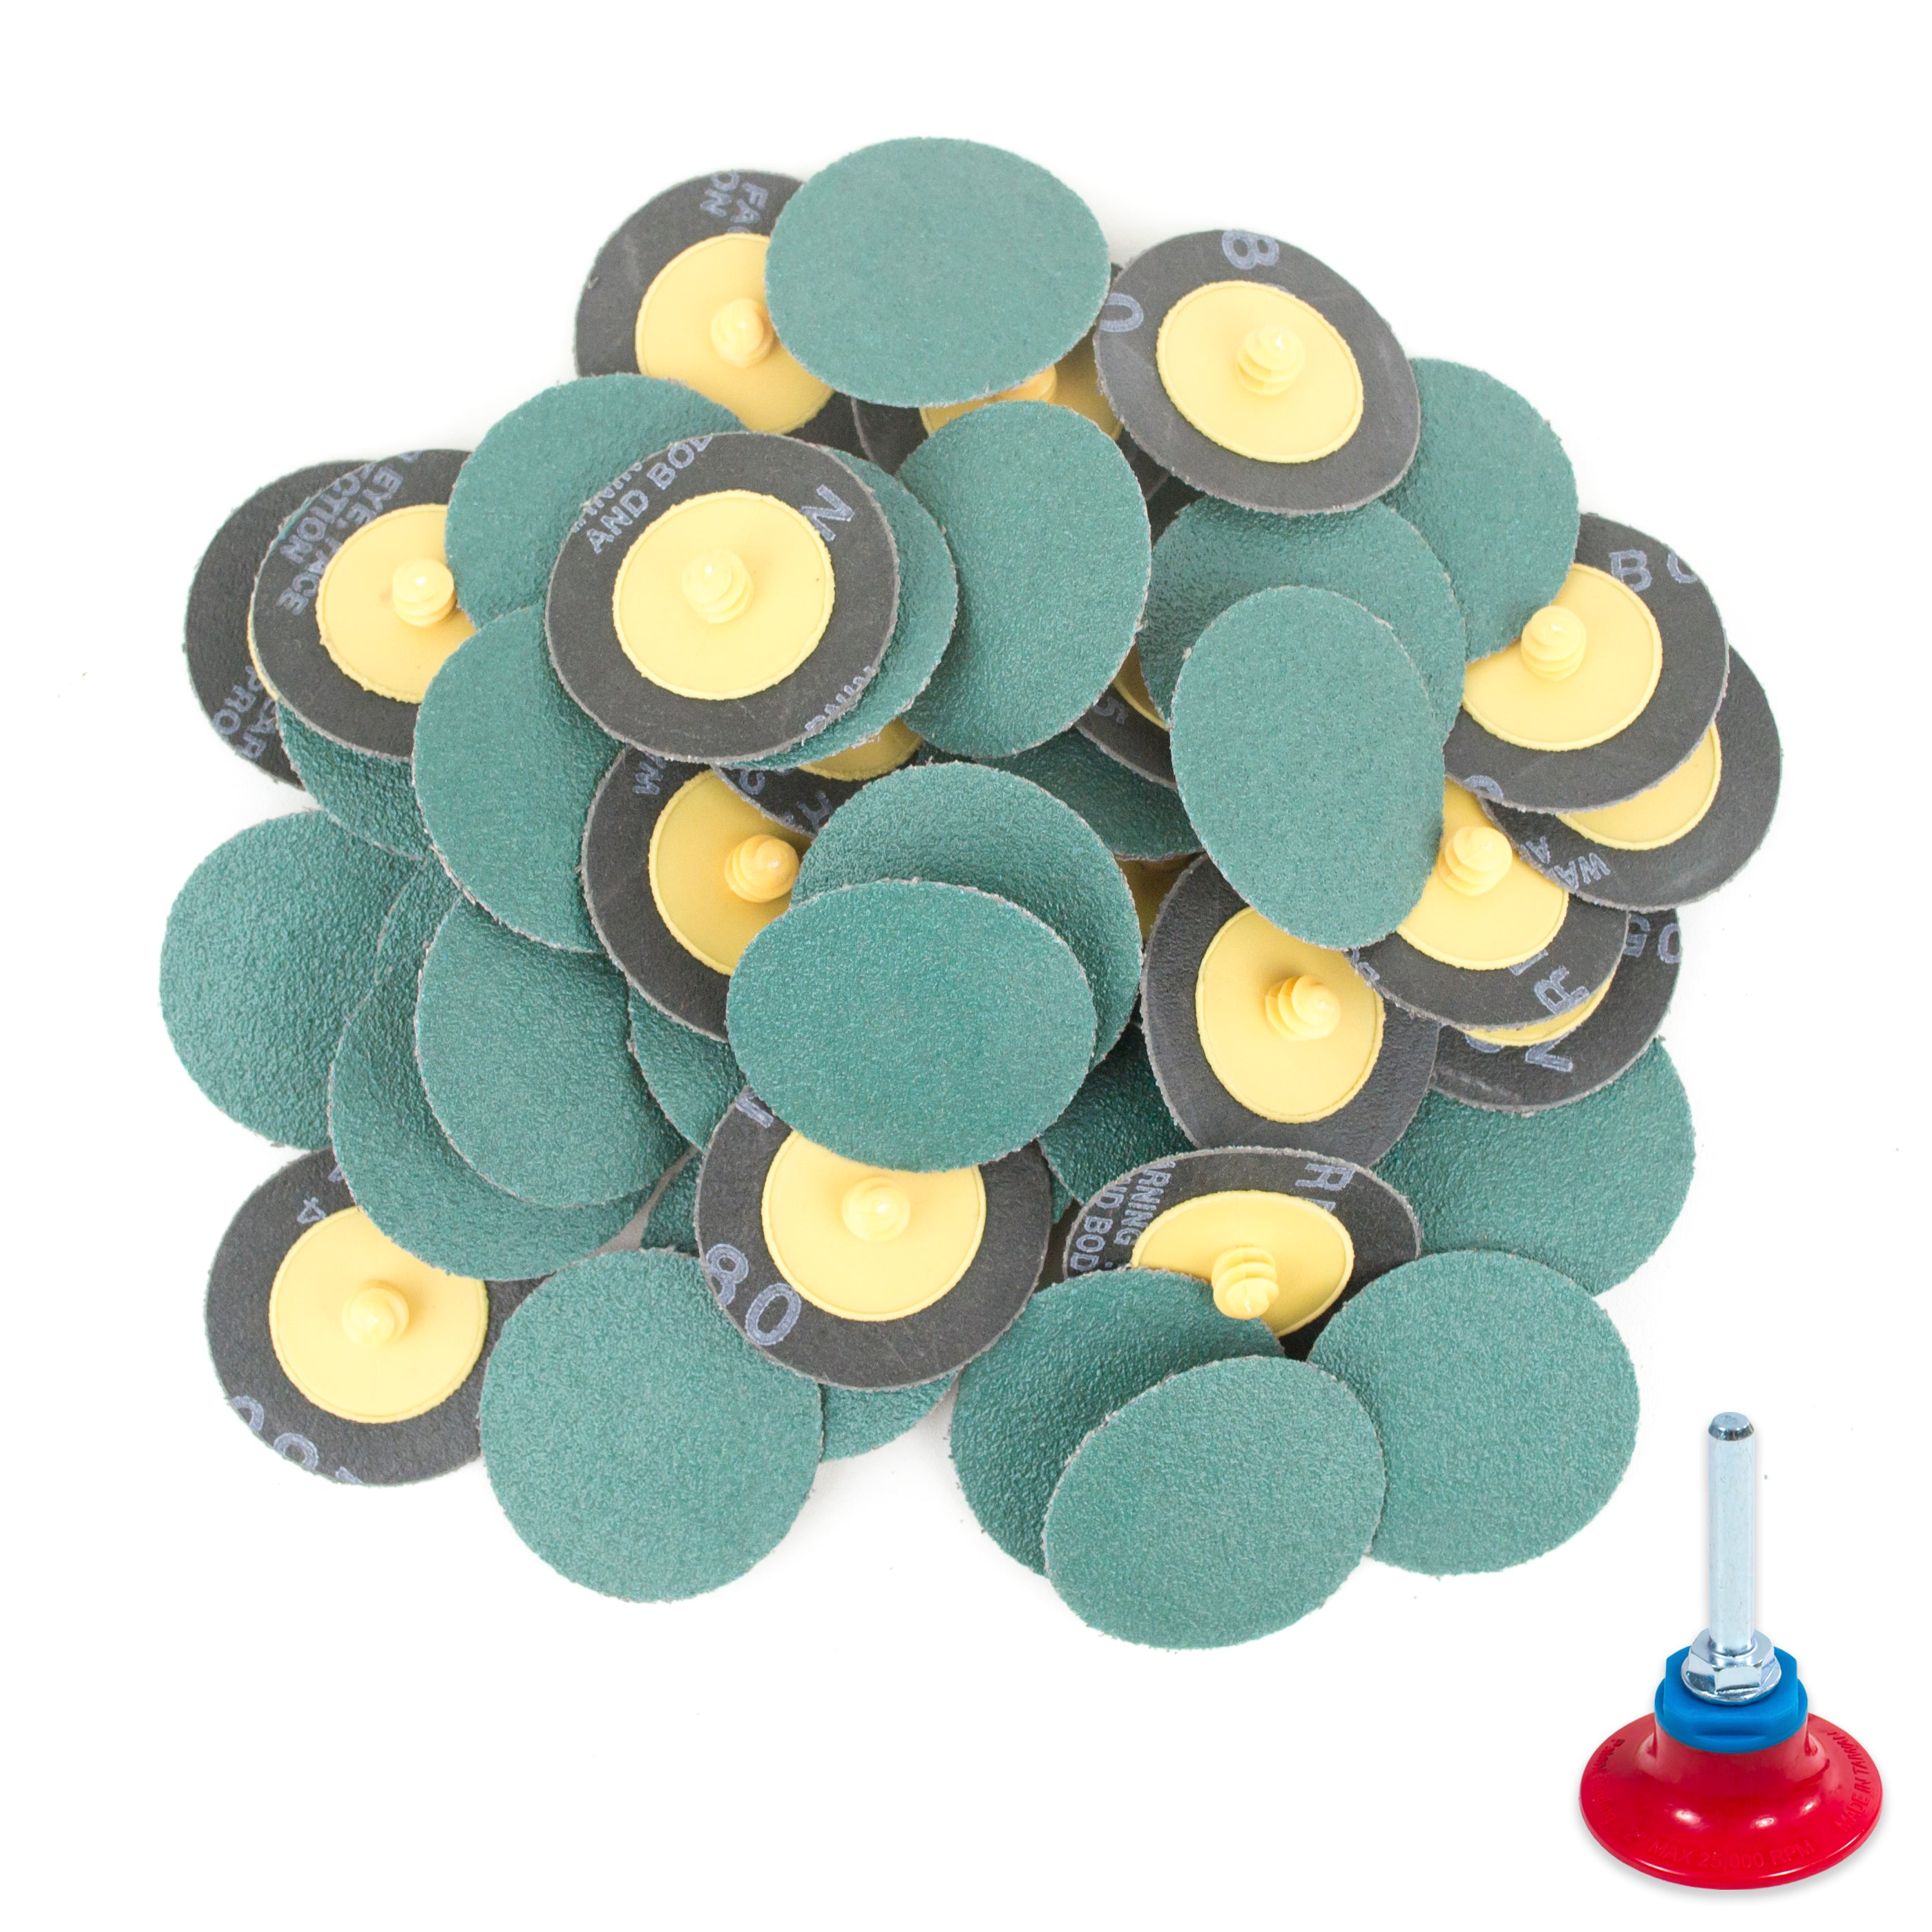 2 Inch 80 Grit Zirconia Roloc Roll On Type Abrasive Sanding Discs 50 Pcs With Holder